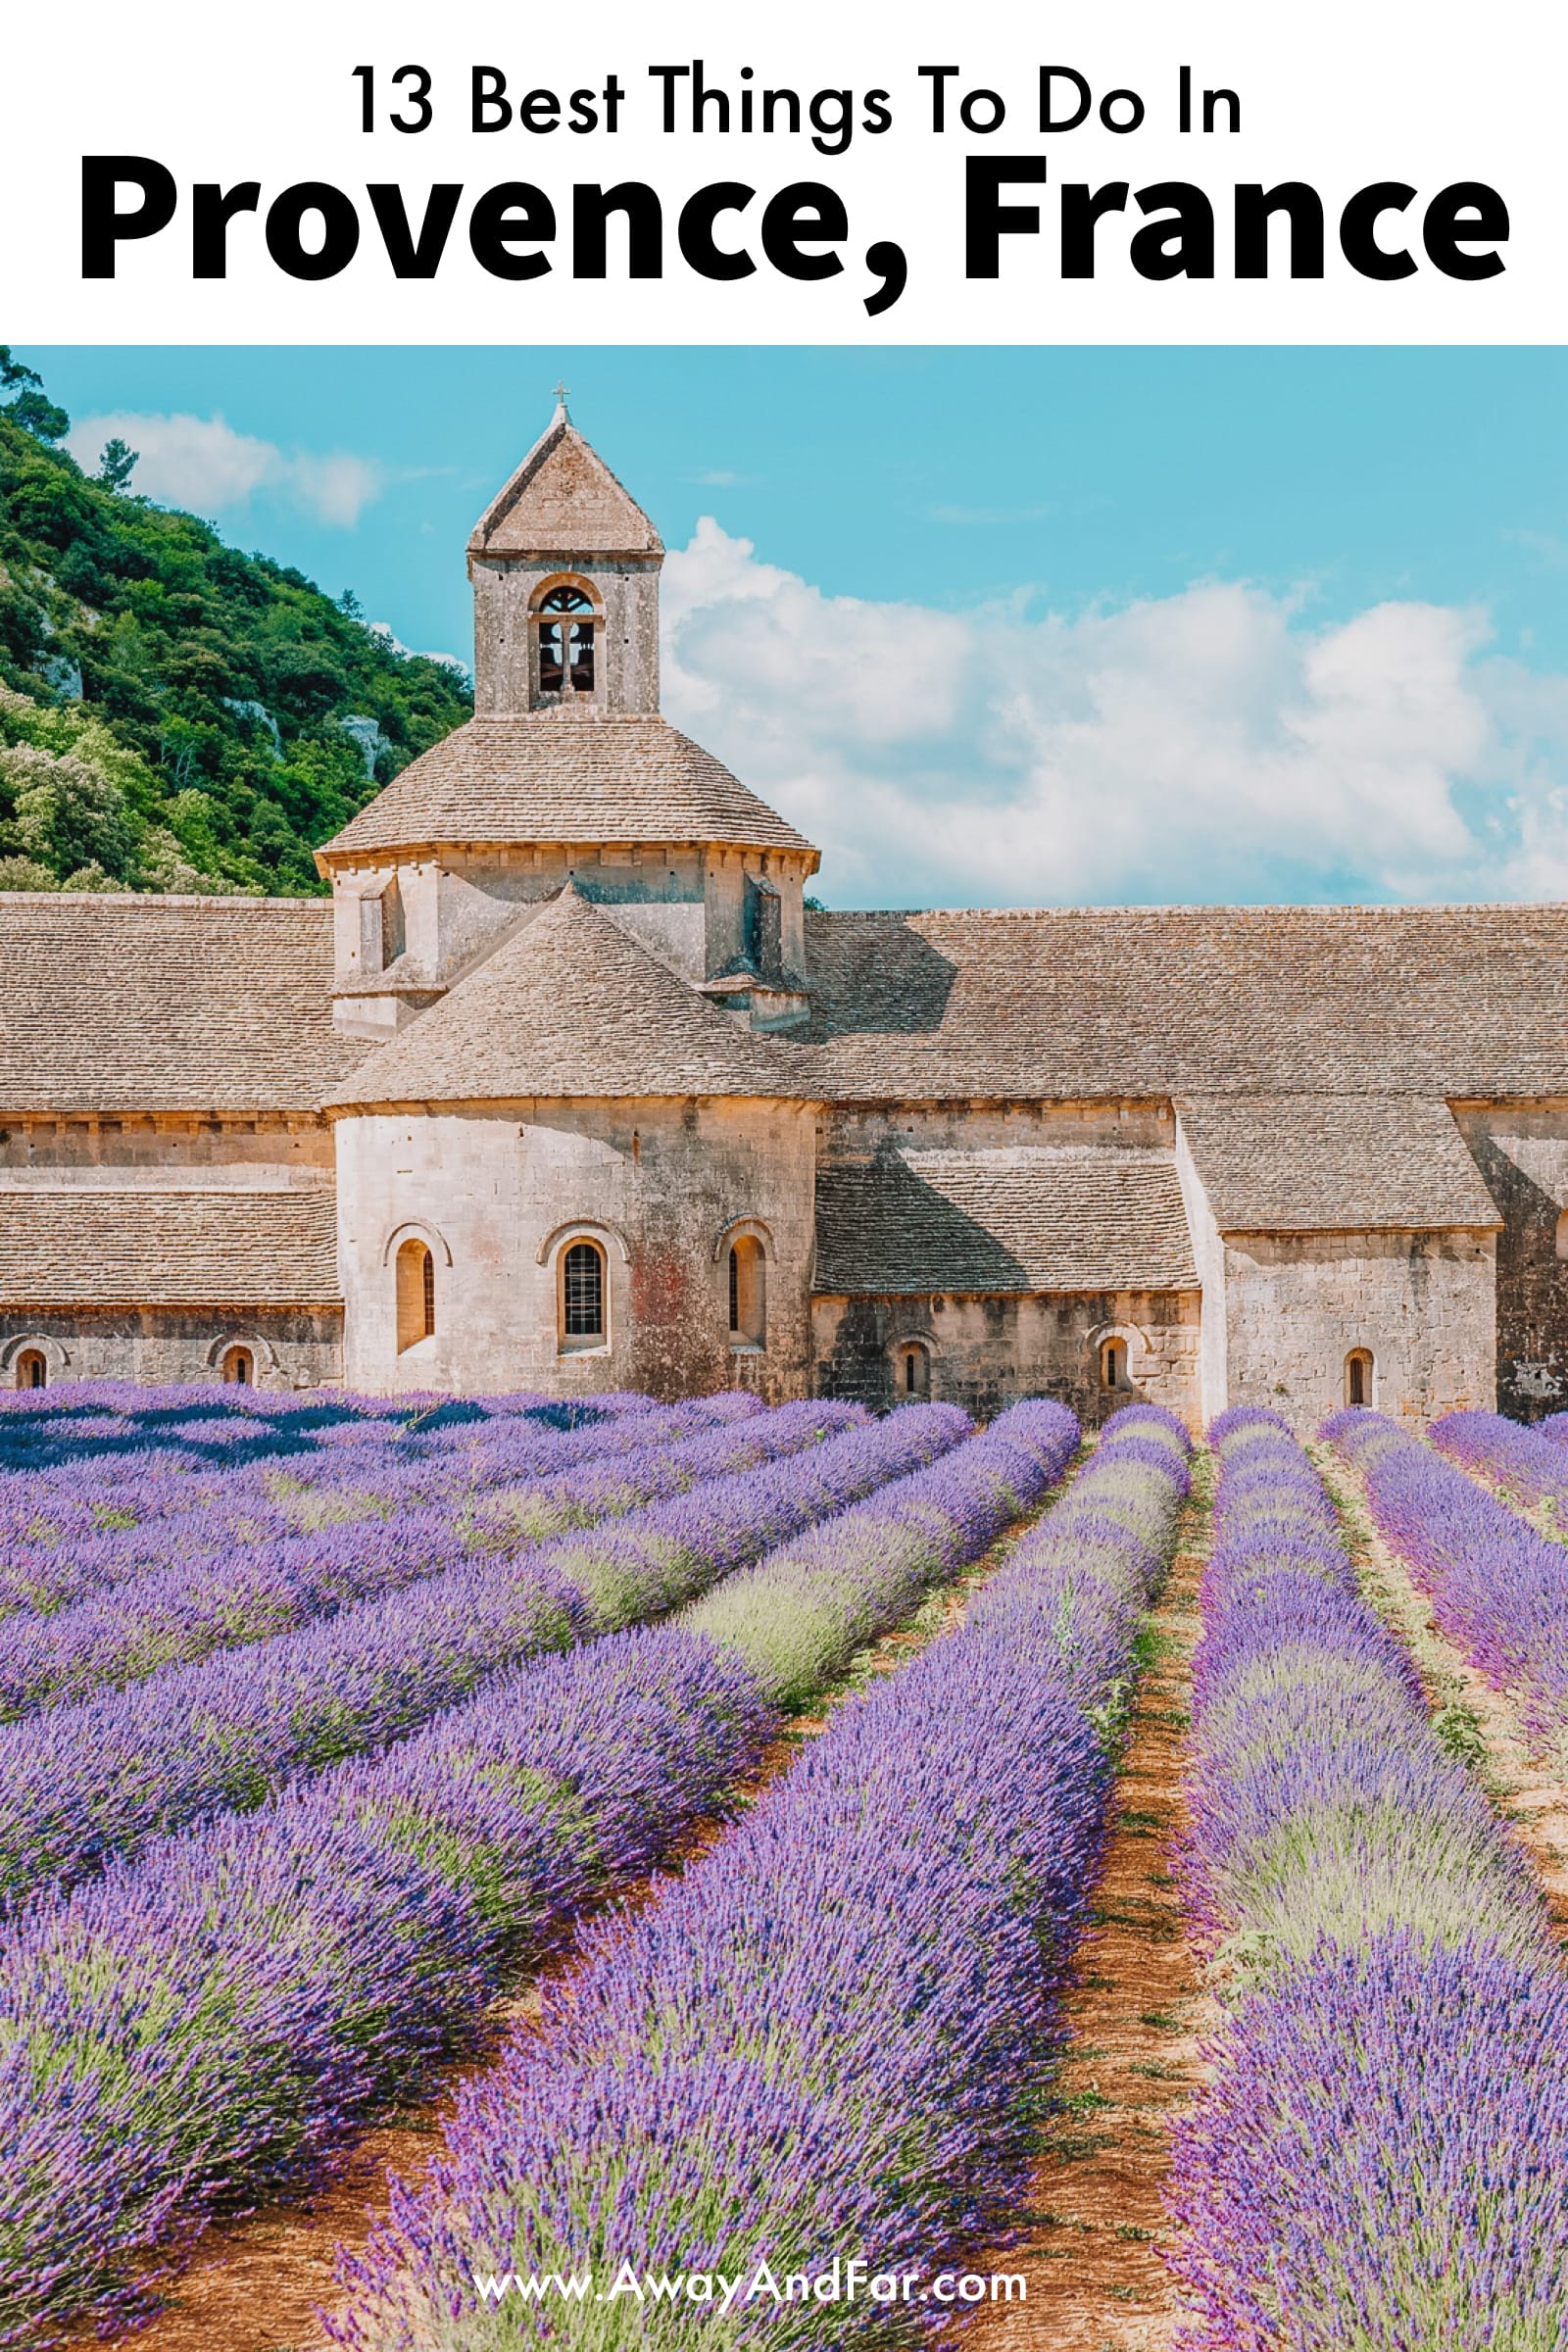 13 Best Things To Do In Provence, France (1)